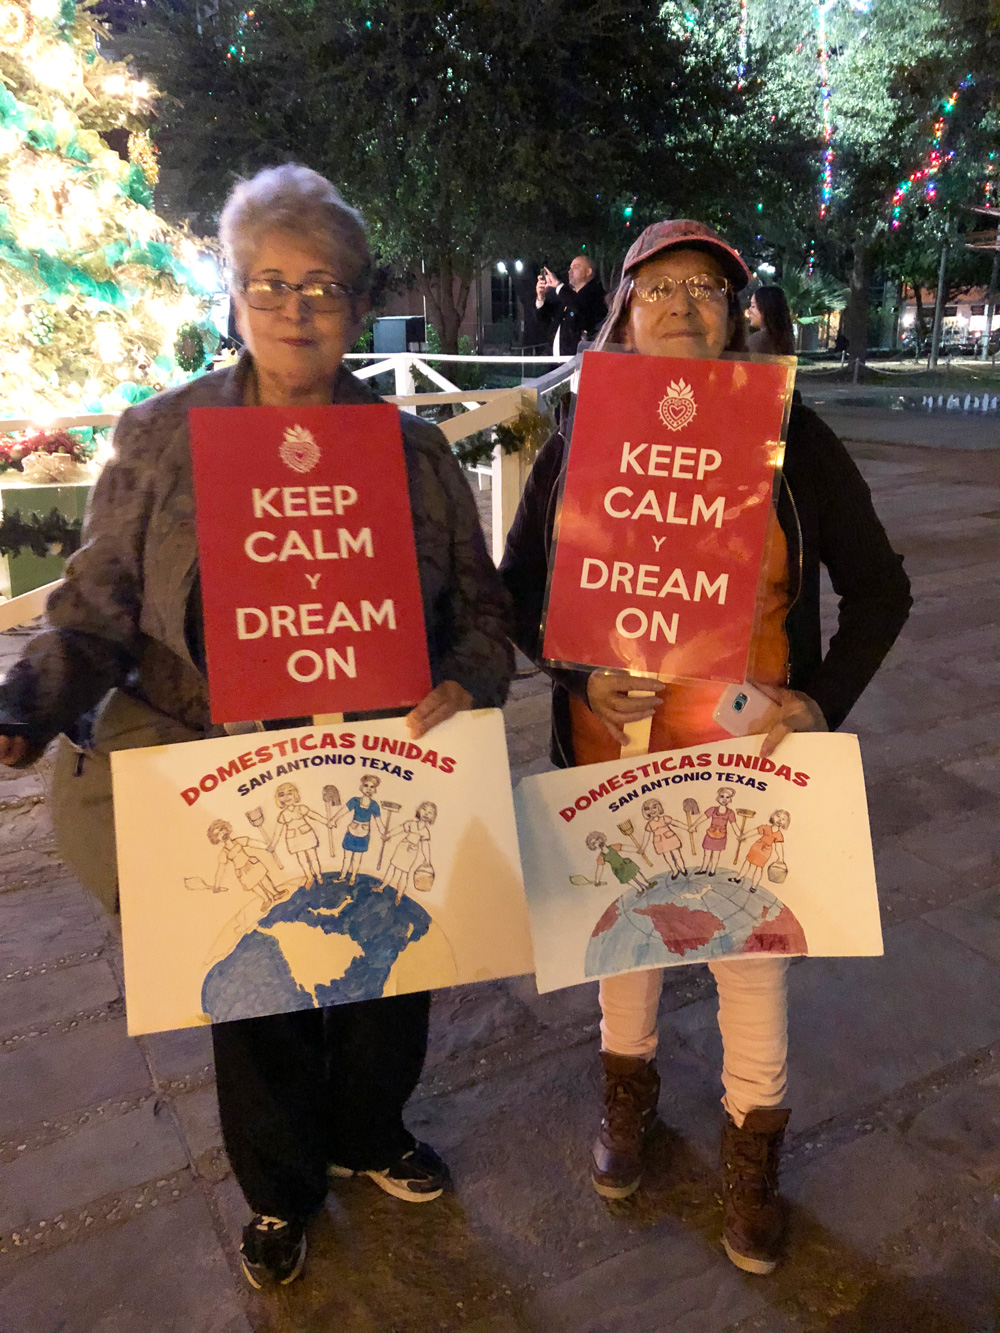 Supporters holding  Keep Calm y Dream On  signs at a rally for the dreamers in San Antonio, TX.  Photo by KSosa